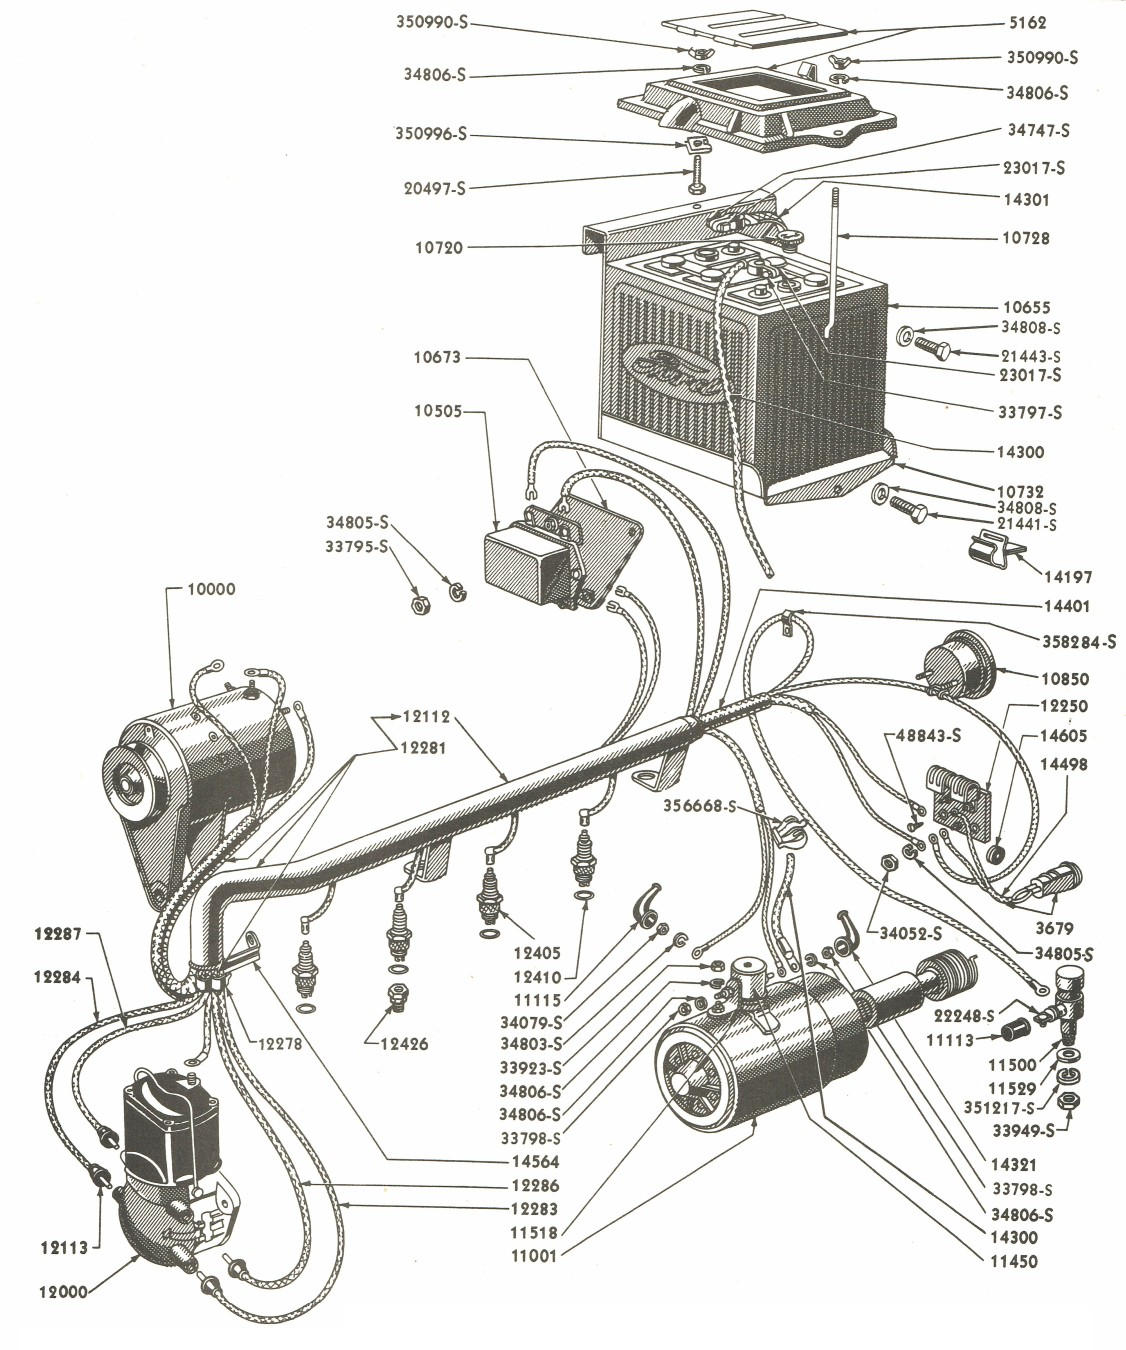 9n hydraulic diagram all kind of wiring diagrams u2022 rh wiringdiagramweb  today Ford 5000 Tractor Hydraulic